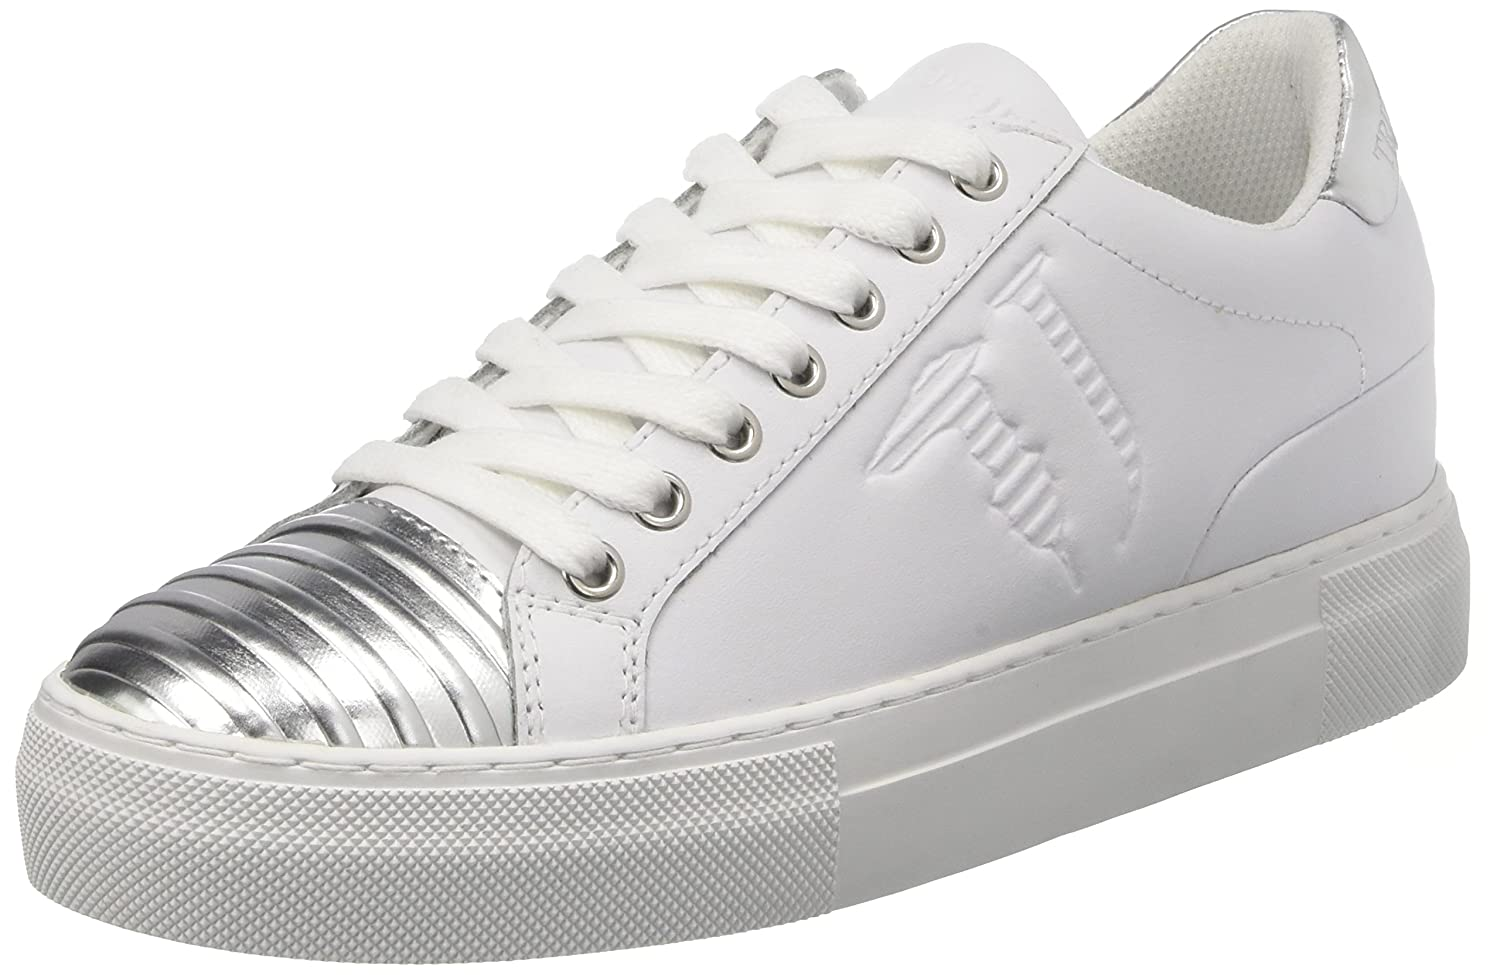 79s60753, Womens Low Trainers Trussardi